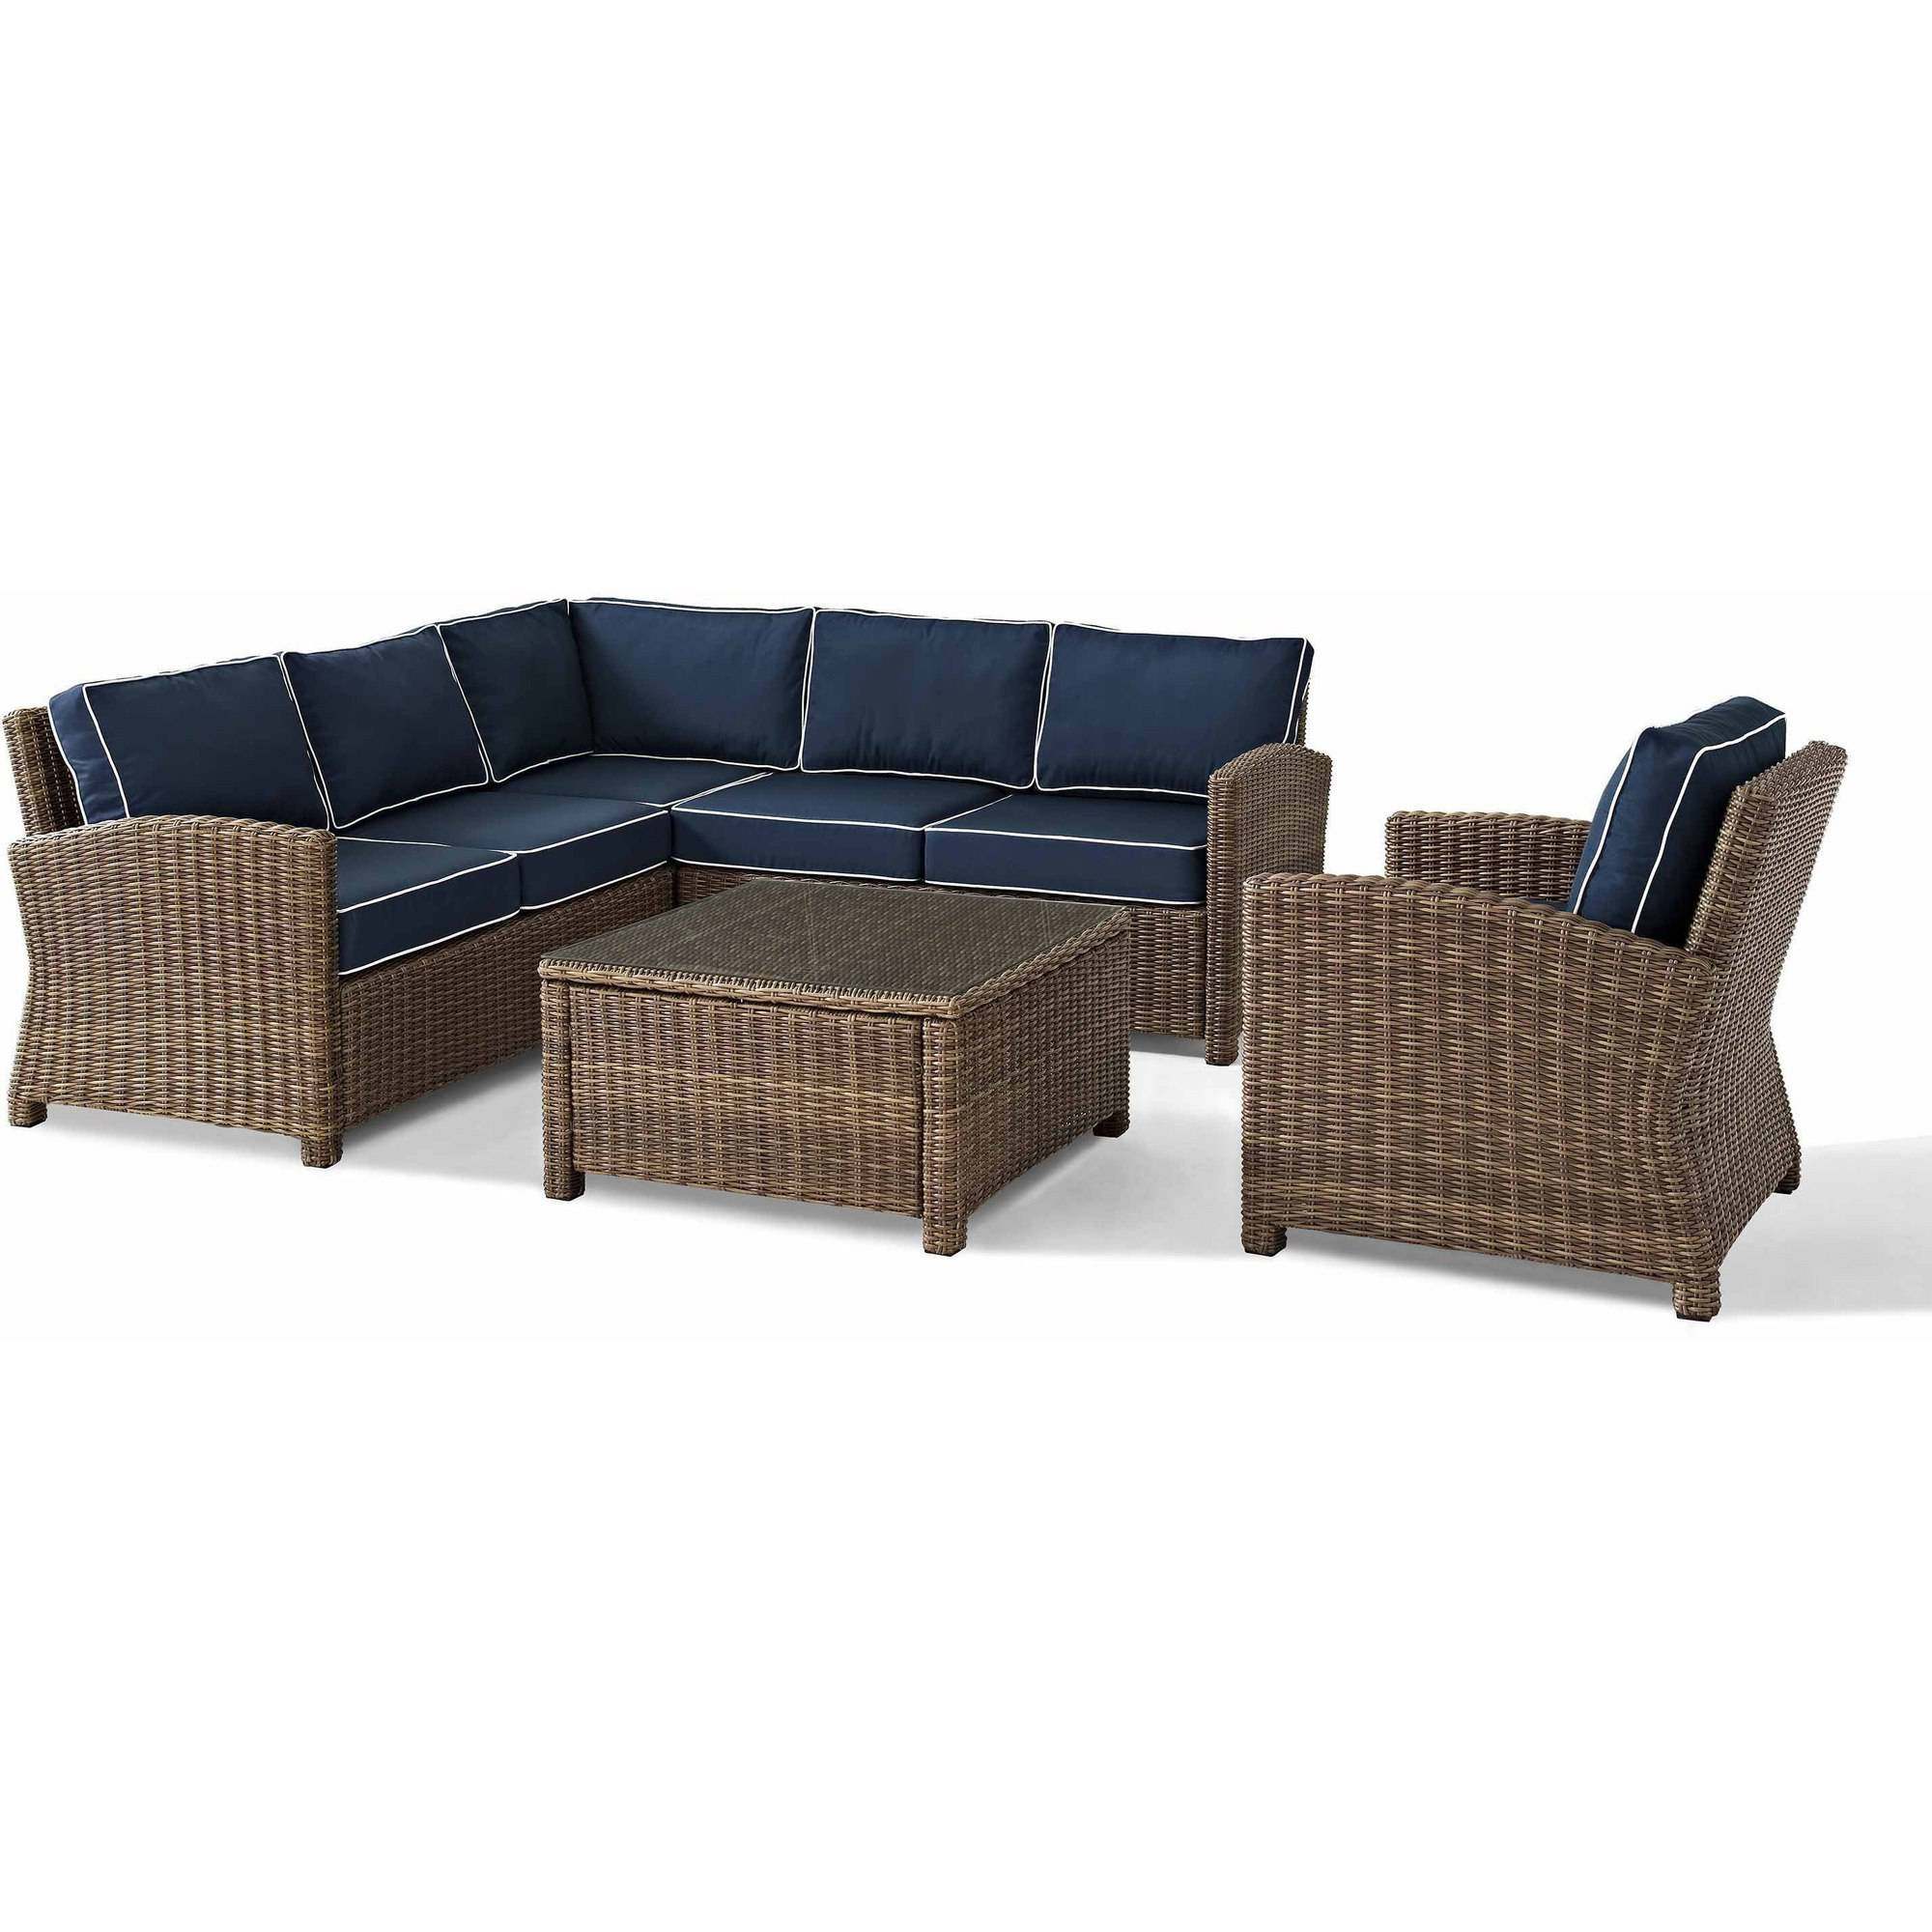 Crosley Furniture Bradenton 5 Piece Outdoor Wicker Seating Set